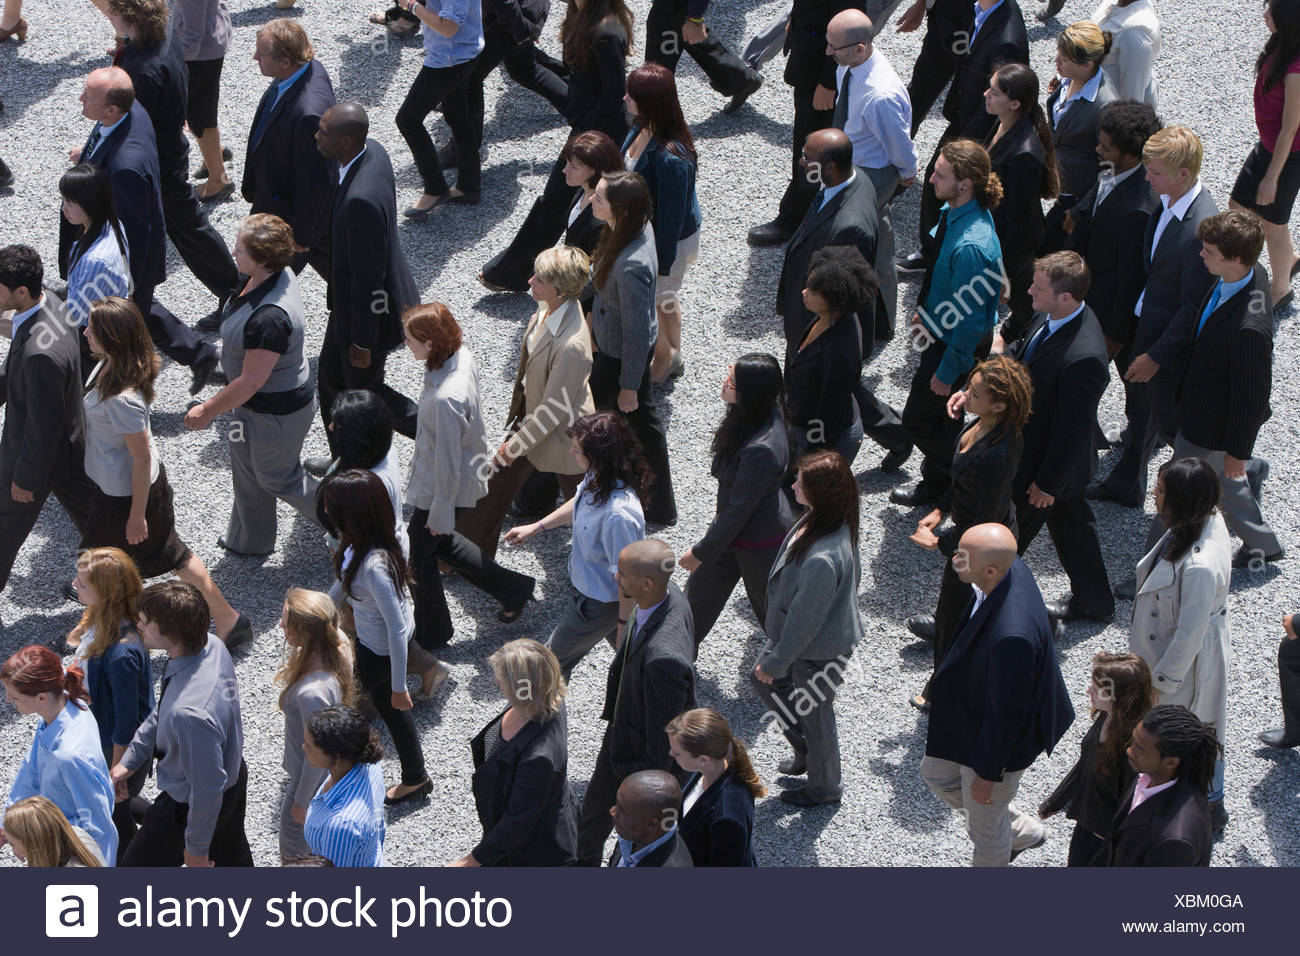 Business people walking - Stock Image